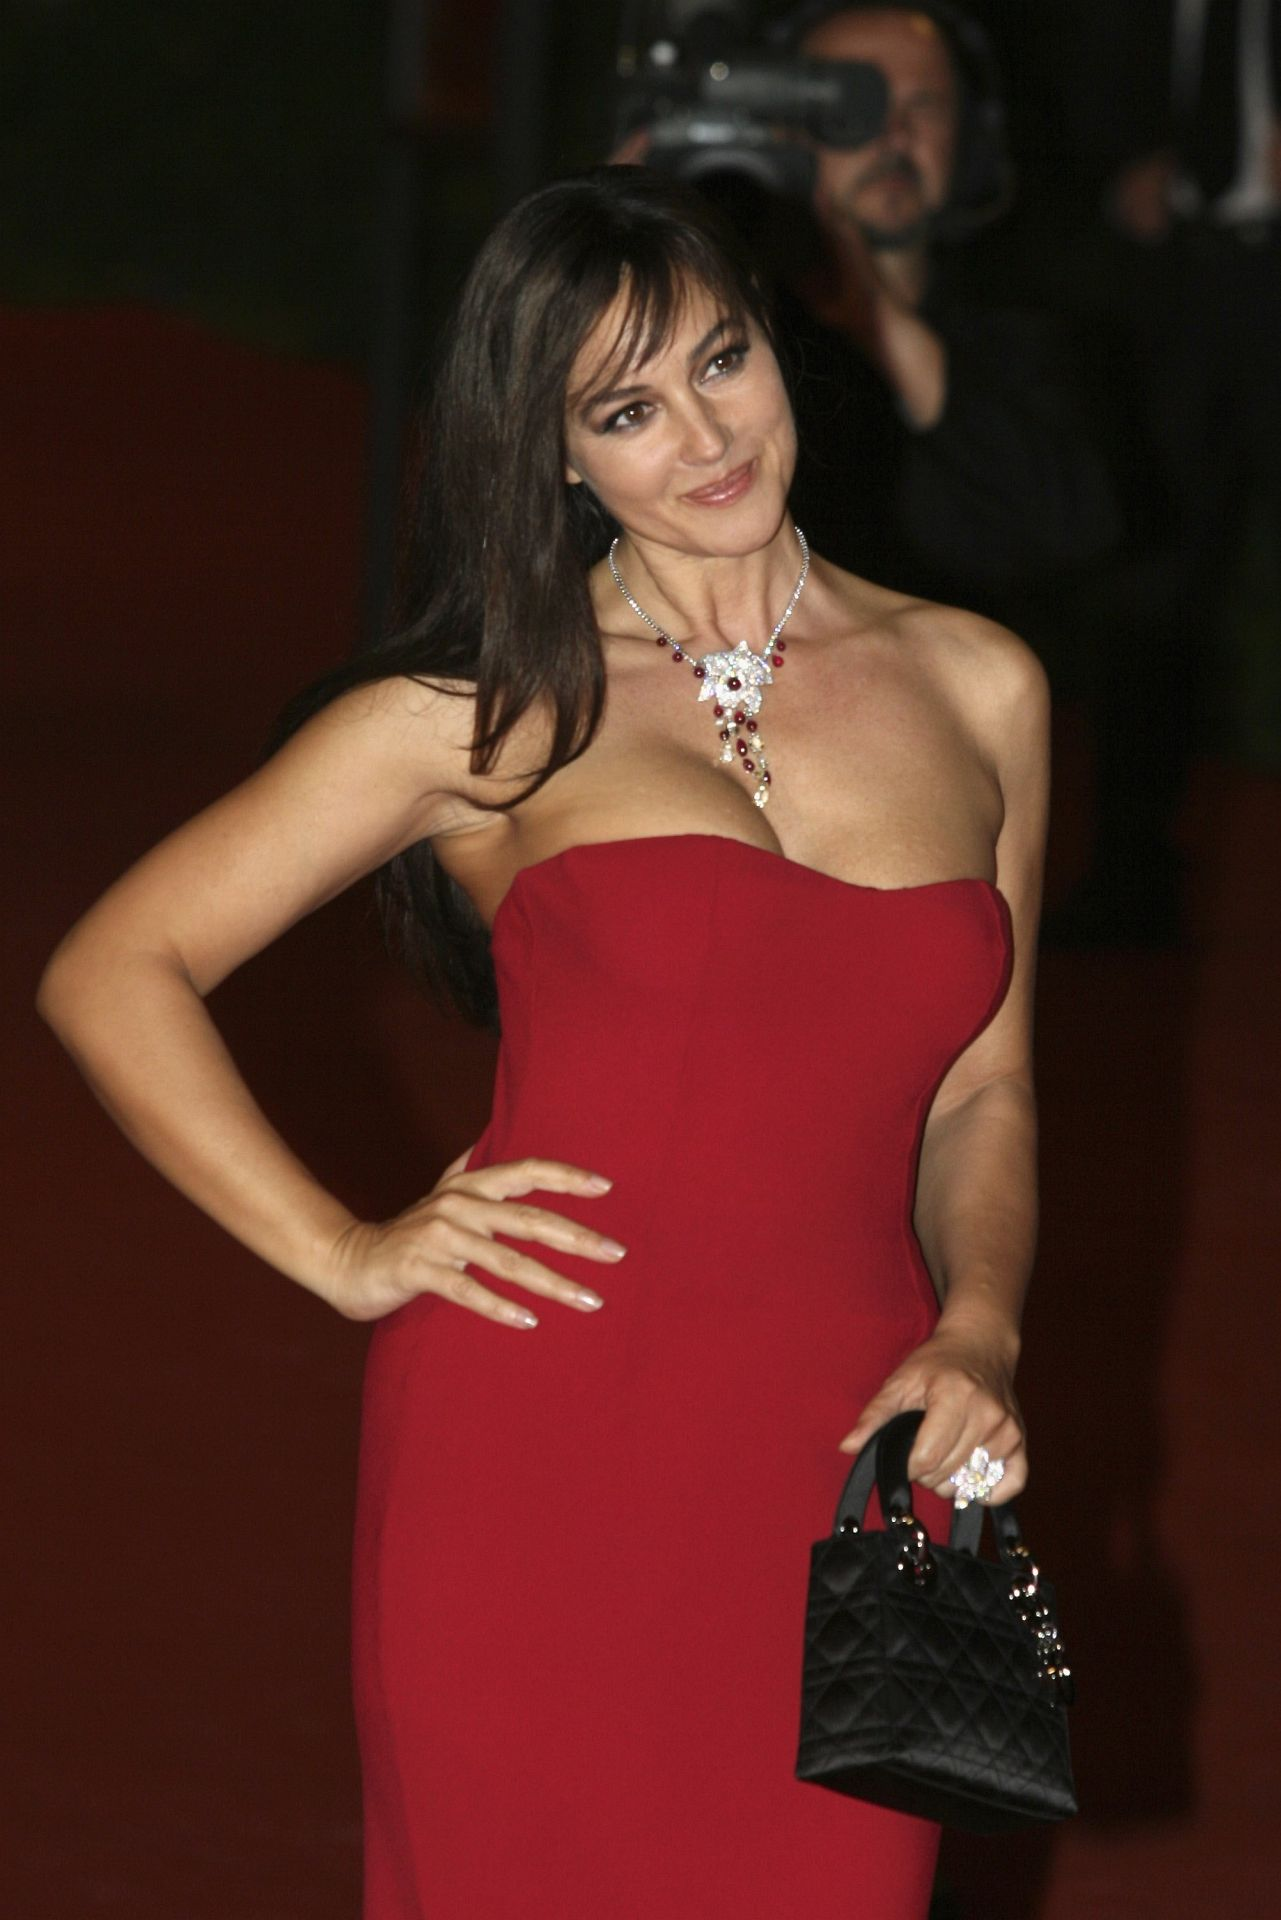 monica bellucci red hot porn images